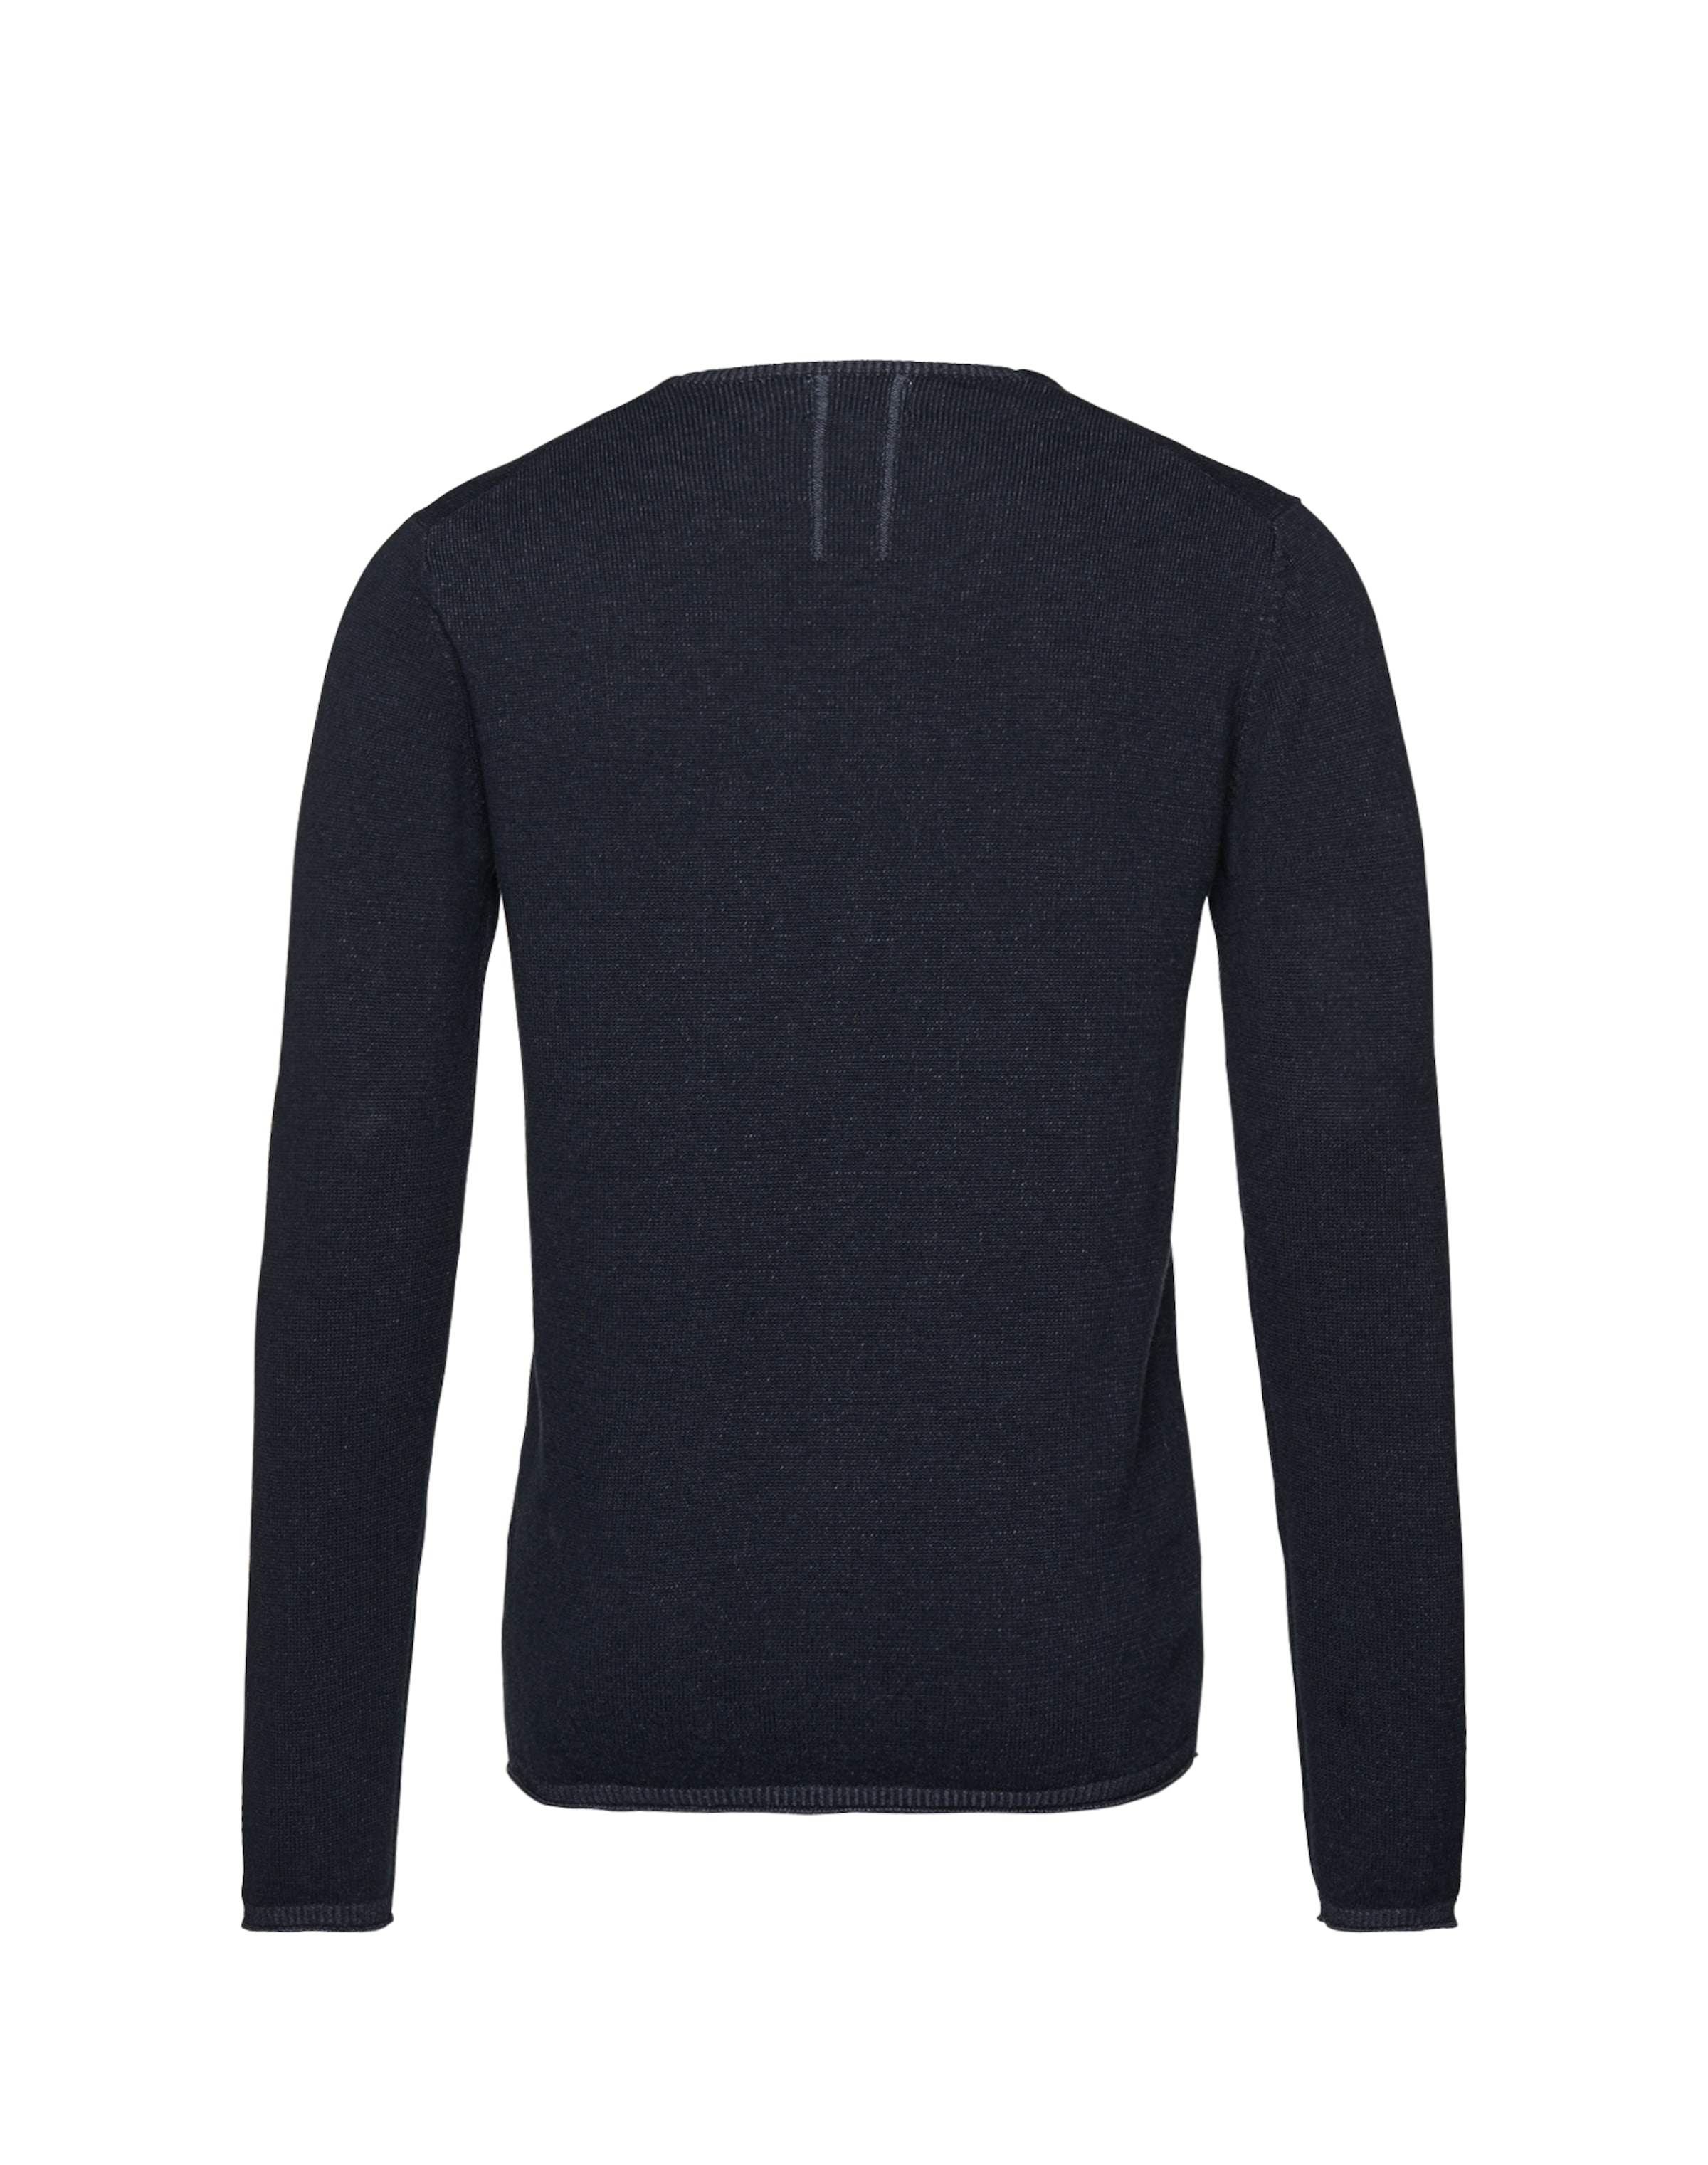 En 9gg' Nowadays Noir over 'plated Pull Pullover 35R4jAL